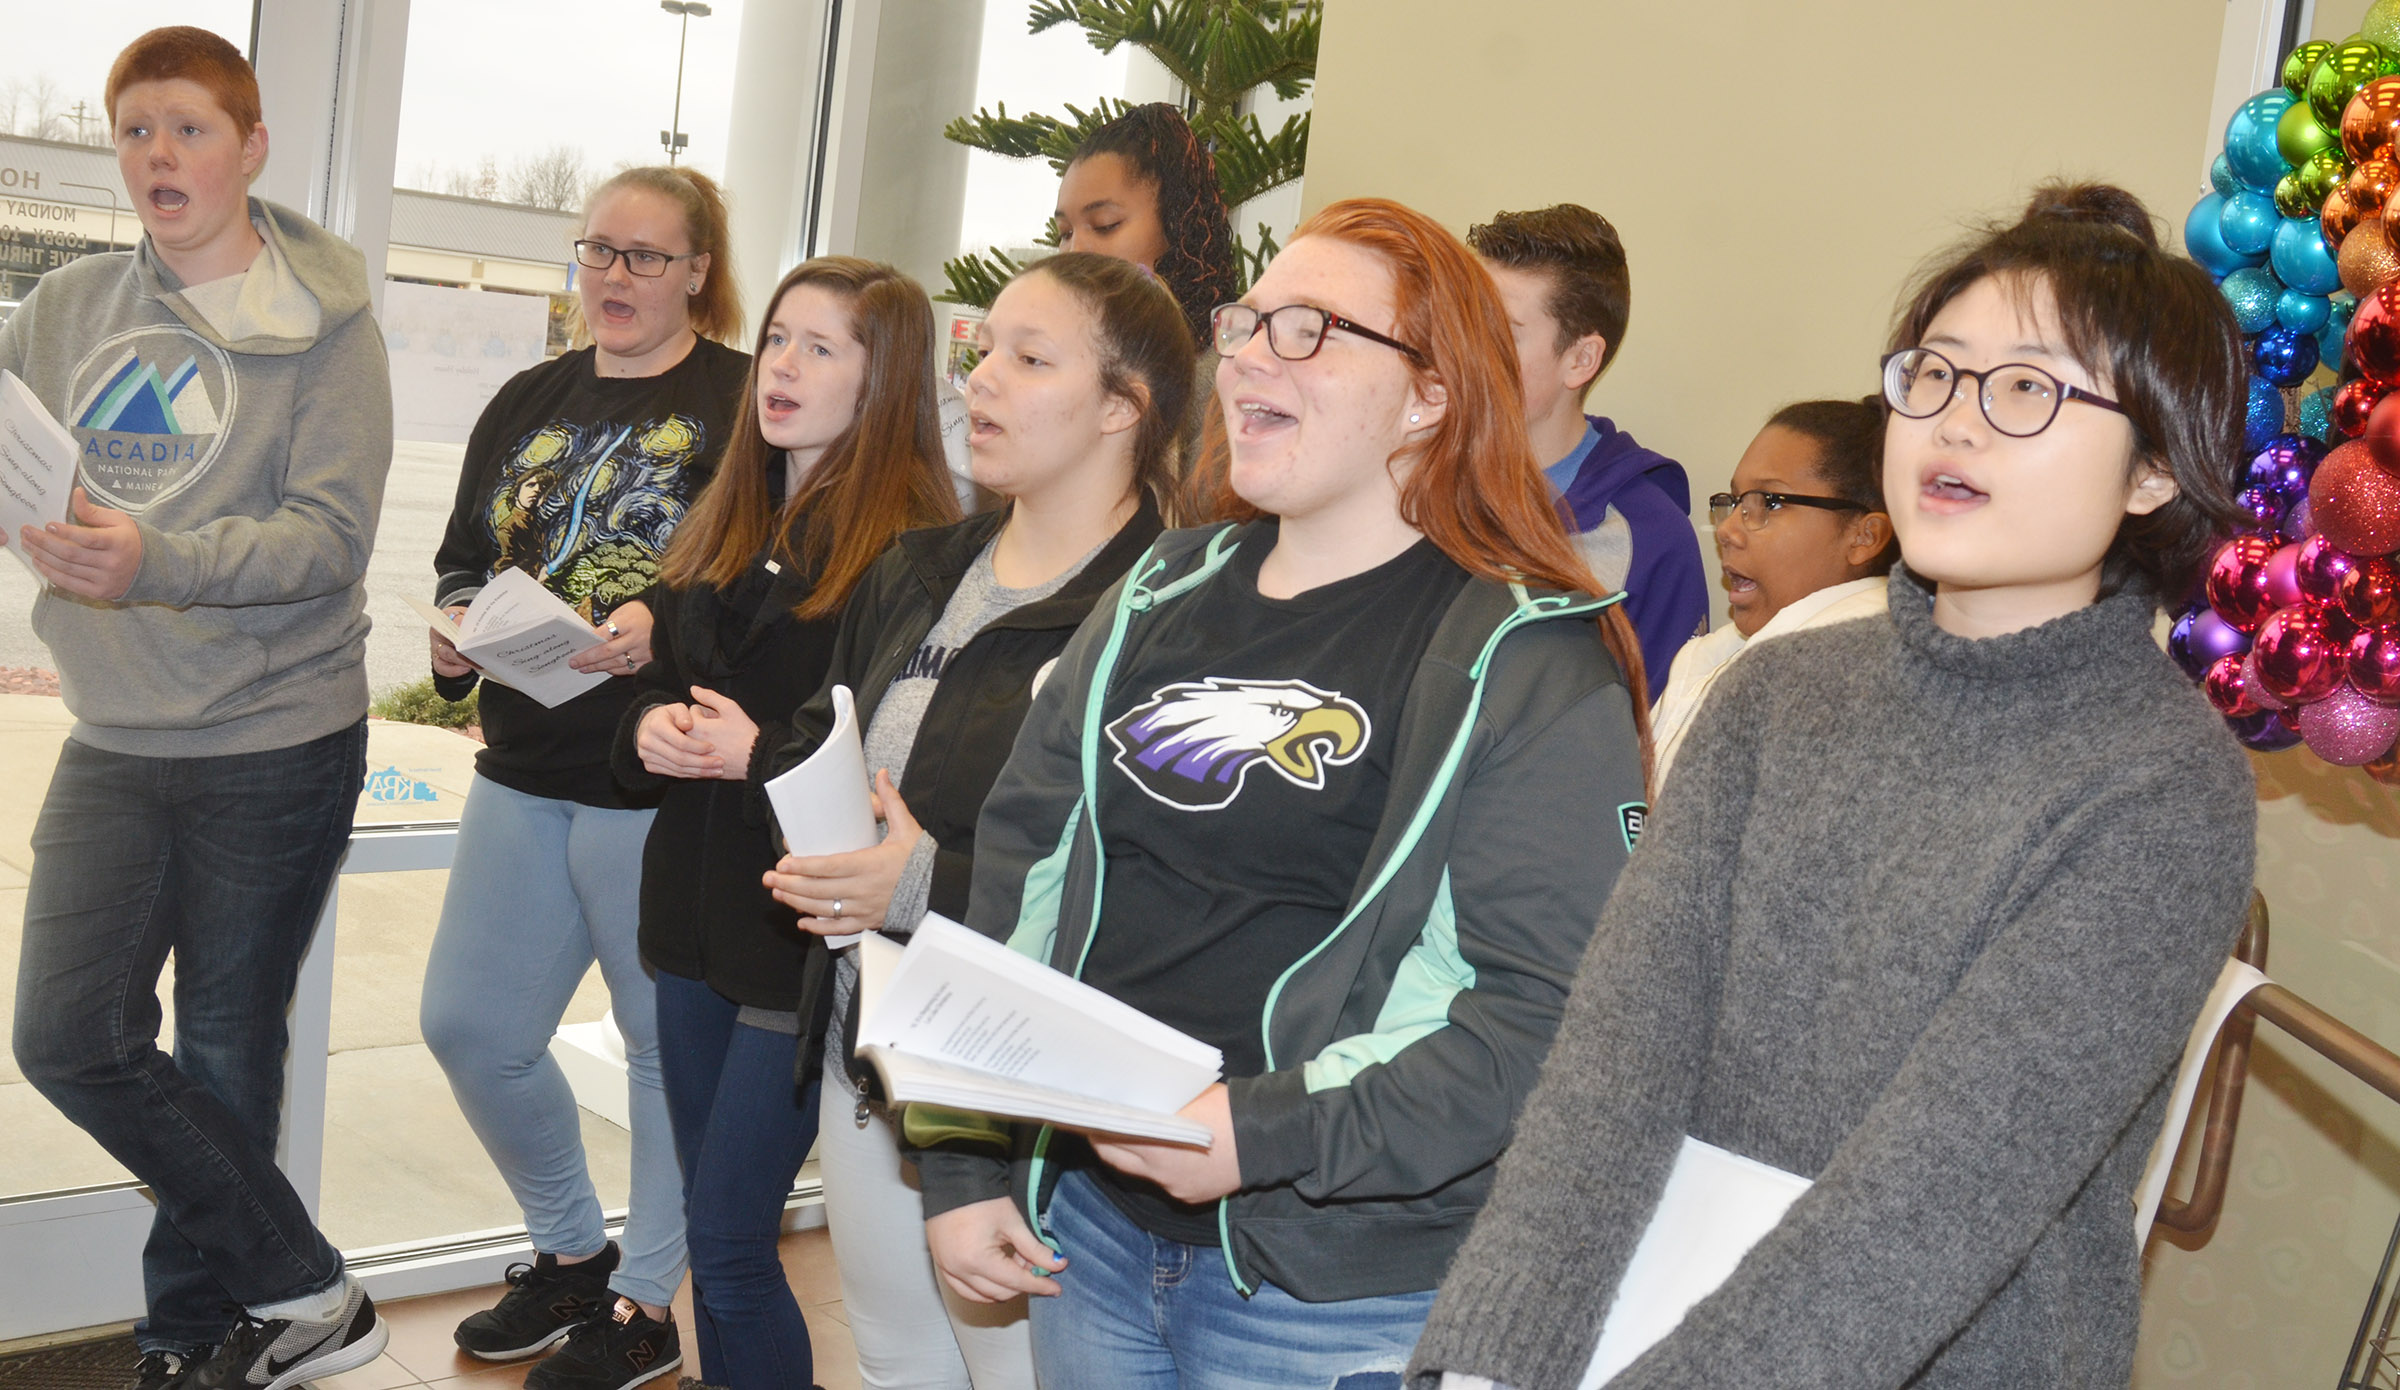 CHS choir members sing Christmas carols at Taylor County Bank. From left, front, are freshman Colin Harris, senior Jay Cox, sophomore Gracyne Hash, freshmen Tierra Bridgewater and Jadelyn Caffee and junior Cherry Kim. Back, junior Malaya Hoskins and sophomores Gavin Johnson and Zaria Cowan.